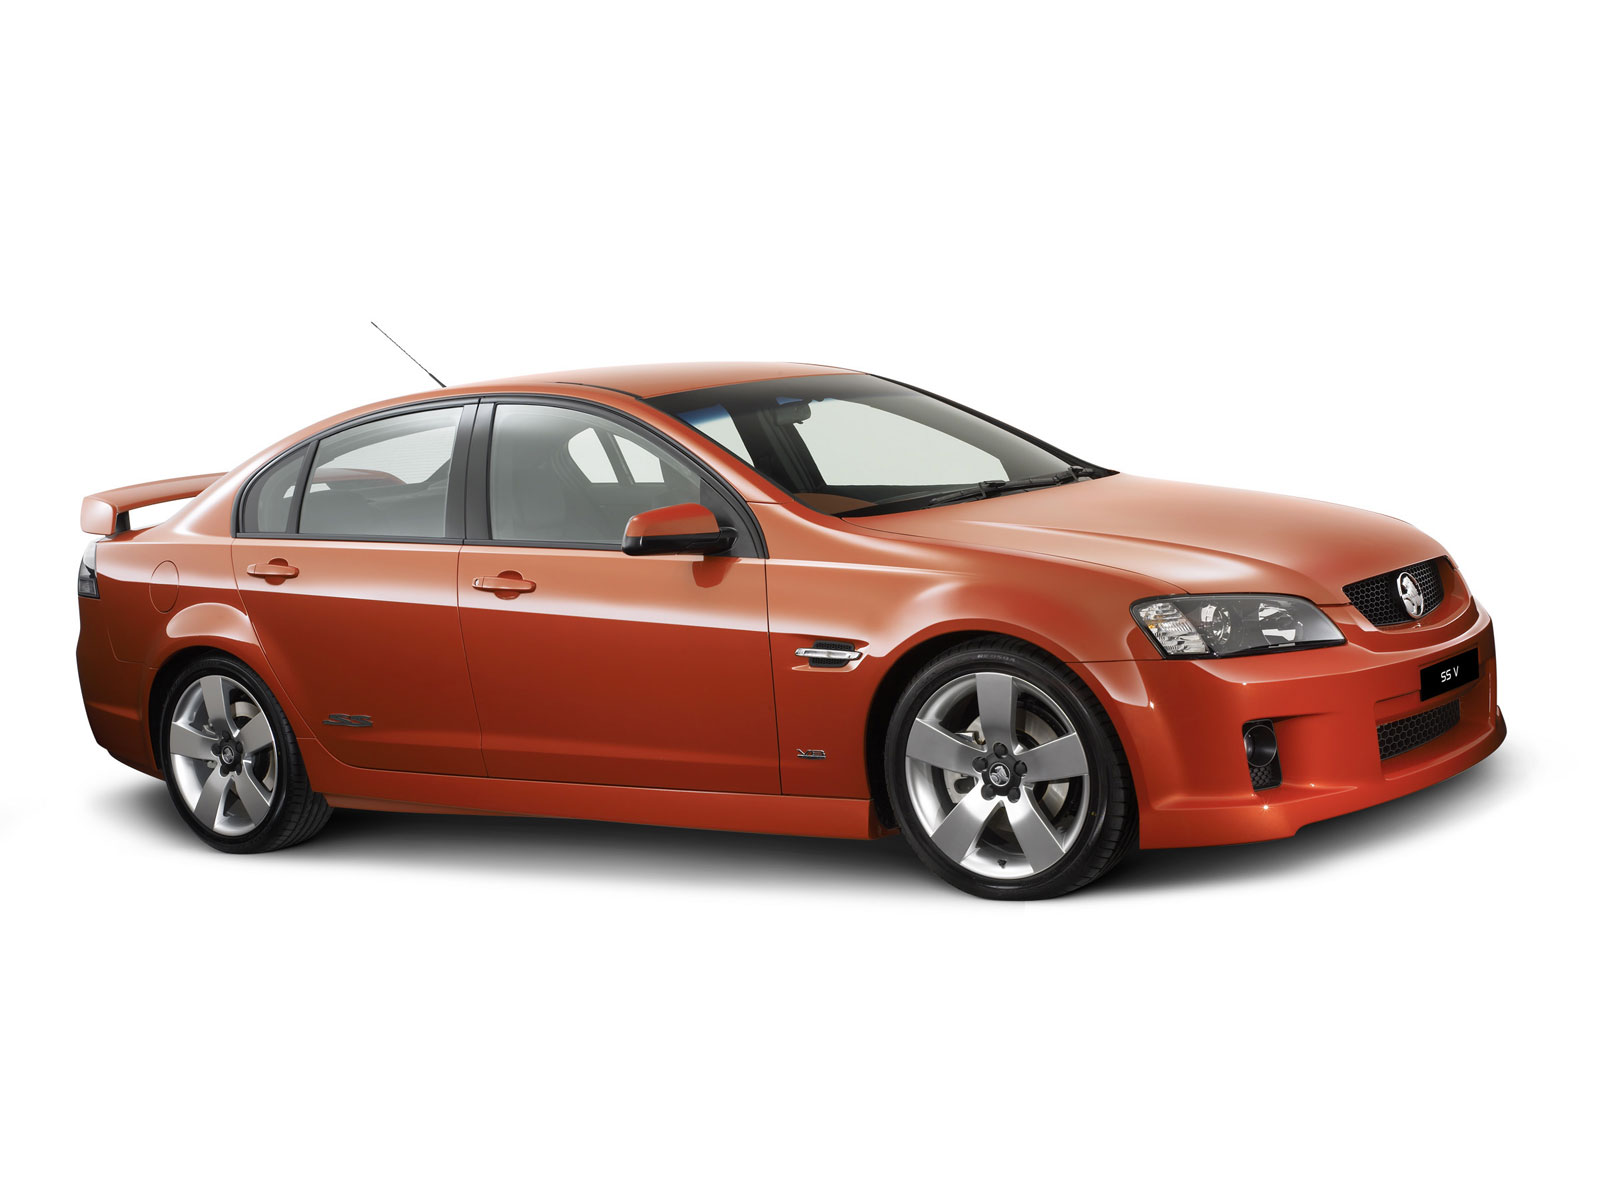 Holden Commodore SS - specifications, description, photos.